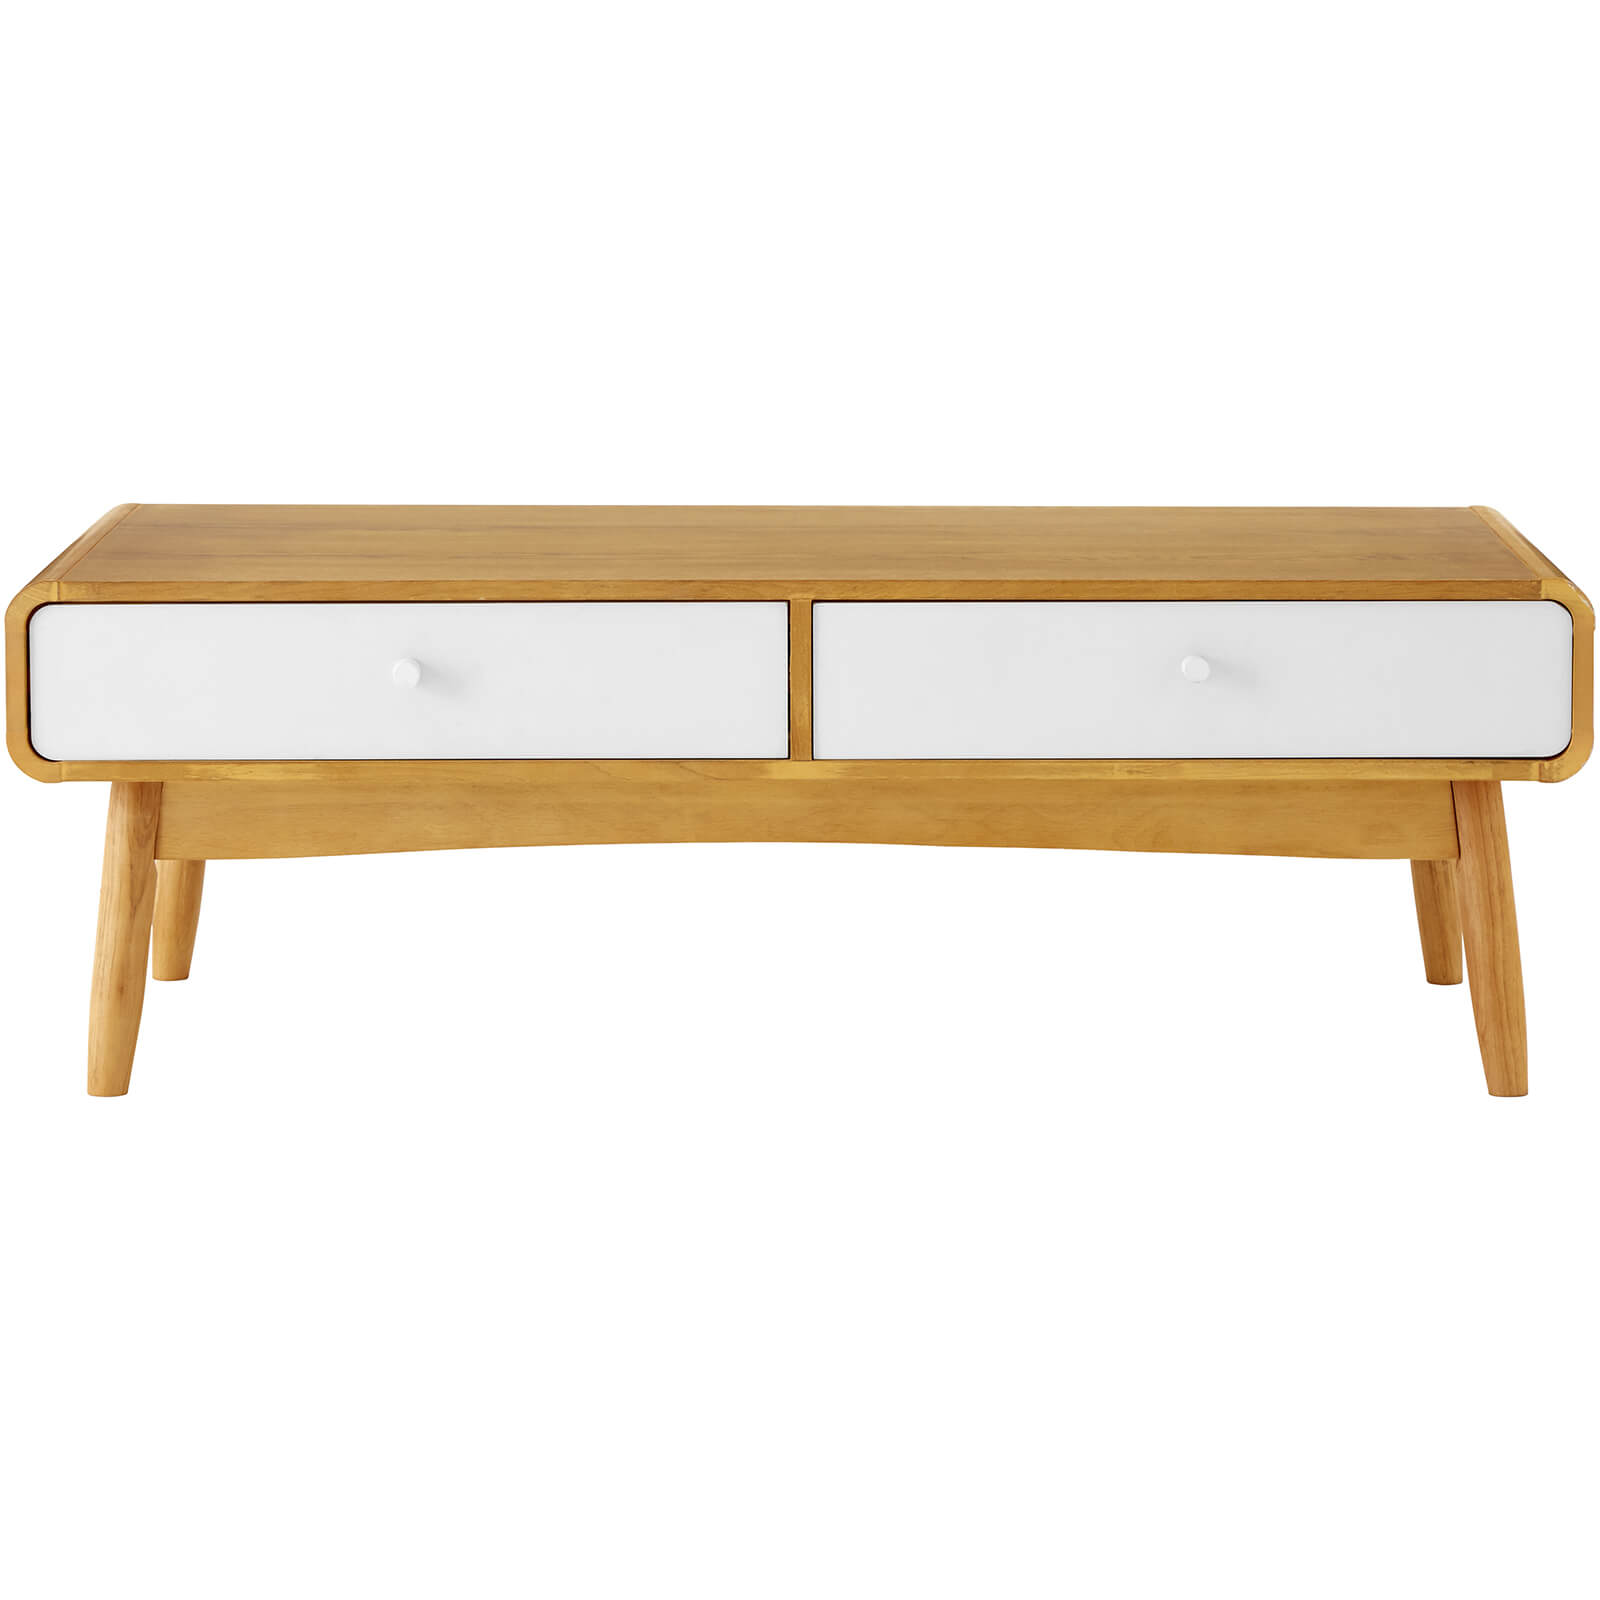 Fifty Five South Malmo Two Drawer Coffee Table - White Oak Veneer